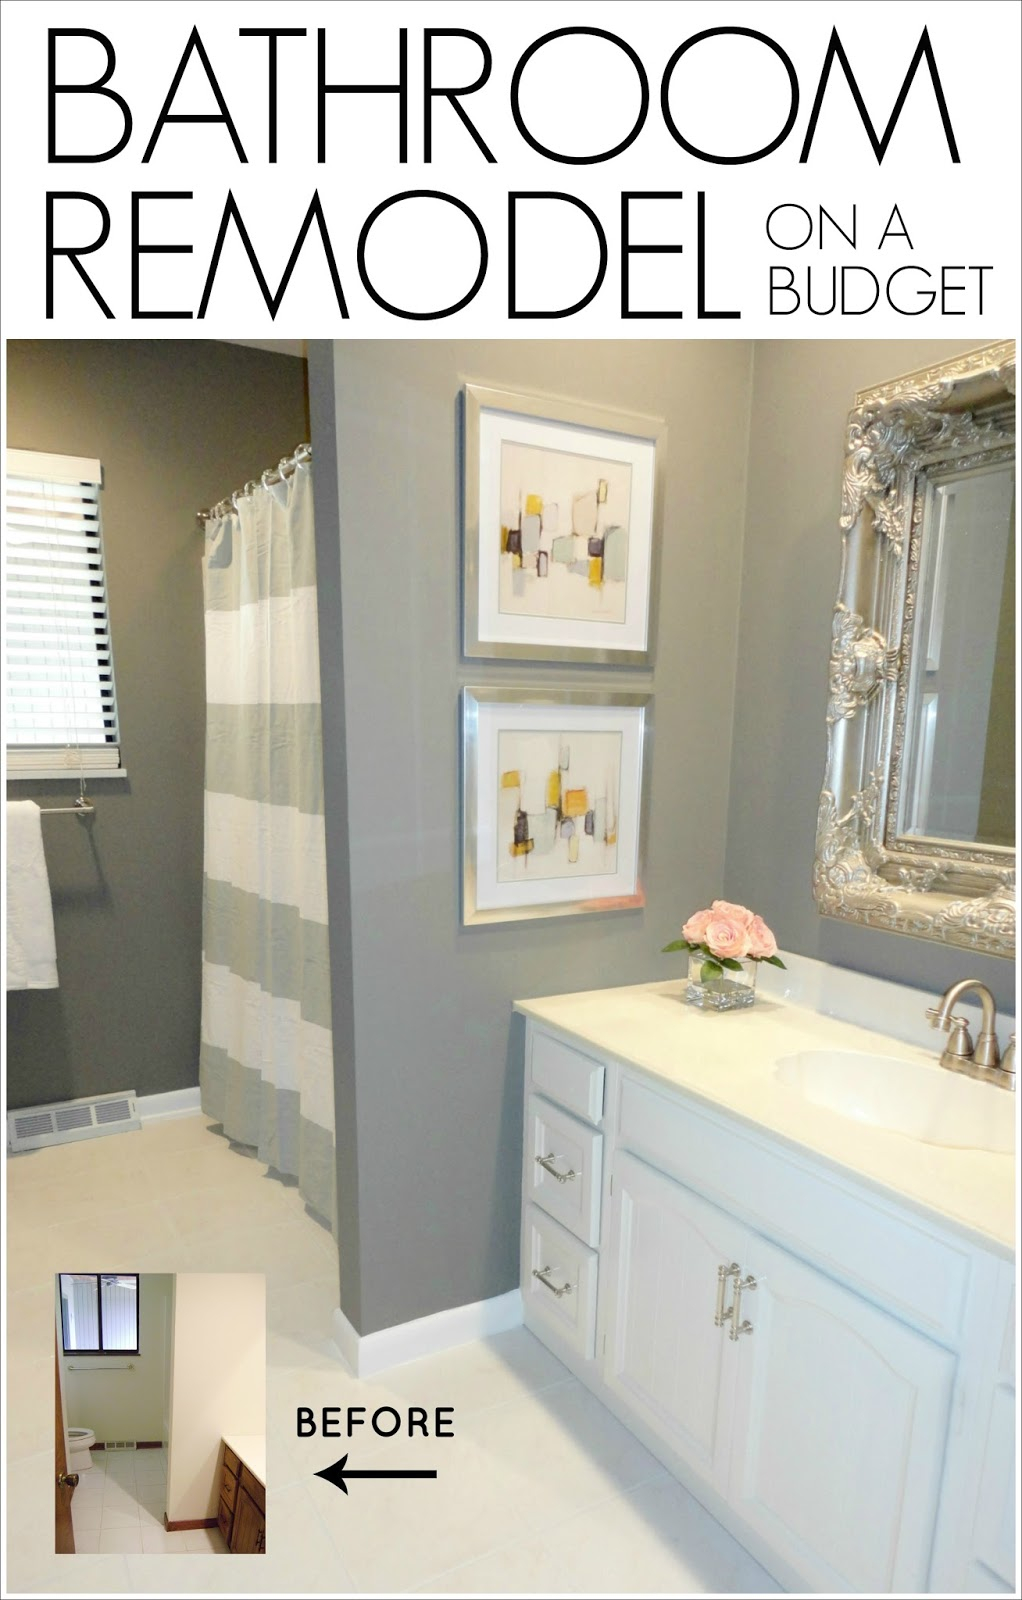 Fabulous Livelovediy: Diy Bathroom Remodel On A Budget with Bathroom Remodel Diy